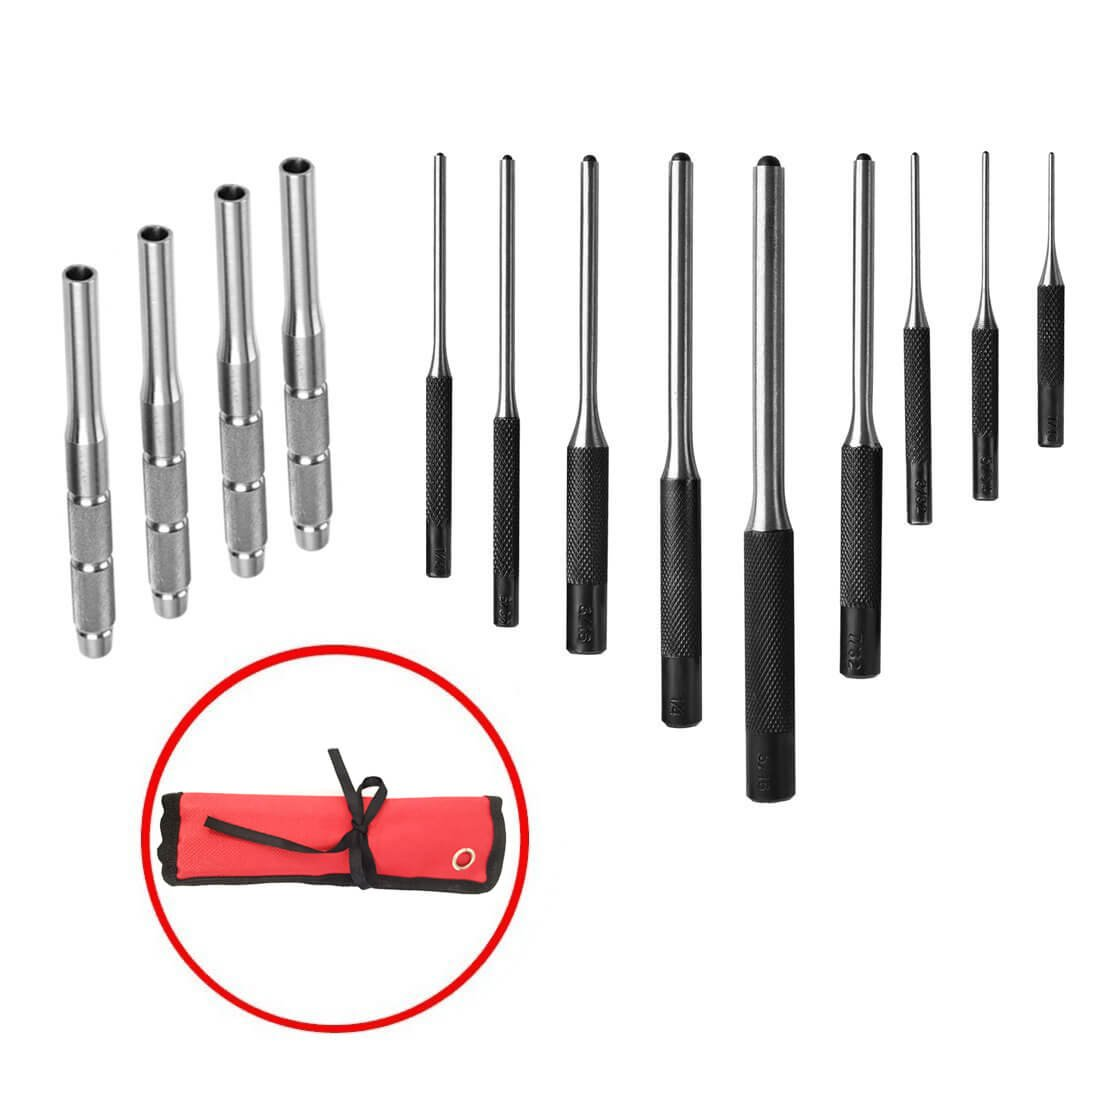 Xage 9 Pieces Roll Pin Punch Set and 4 Pieces Hollow End Starter Punch Tool with Carry Case